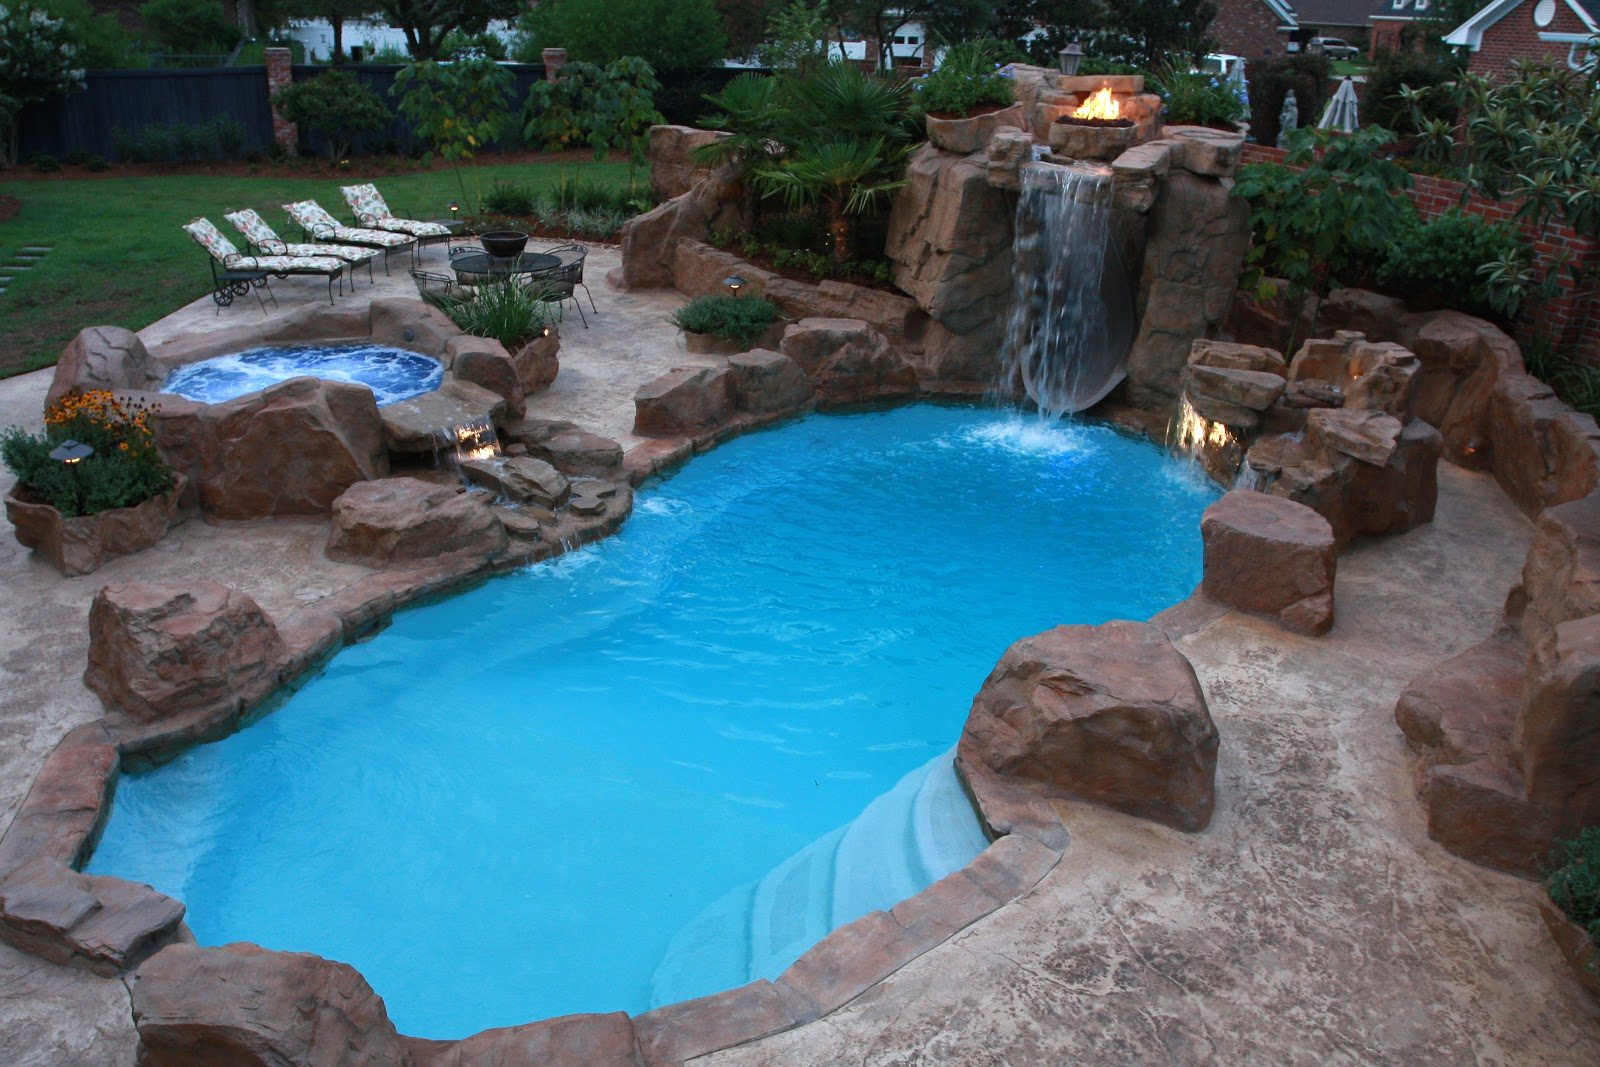 Cool Backyard Pool Designs for Your Outdoor Space: Backyard Pool Designs | Estimated Cost Of Inground Pool | Inground Swimming Pools Designs